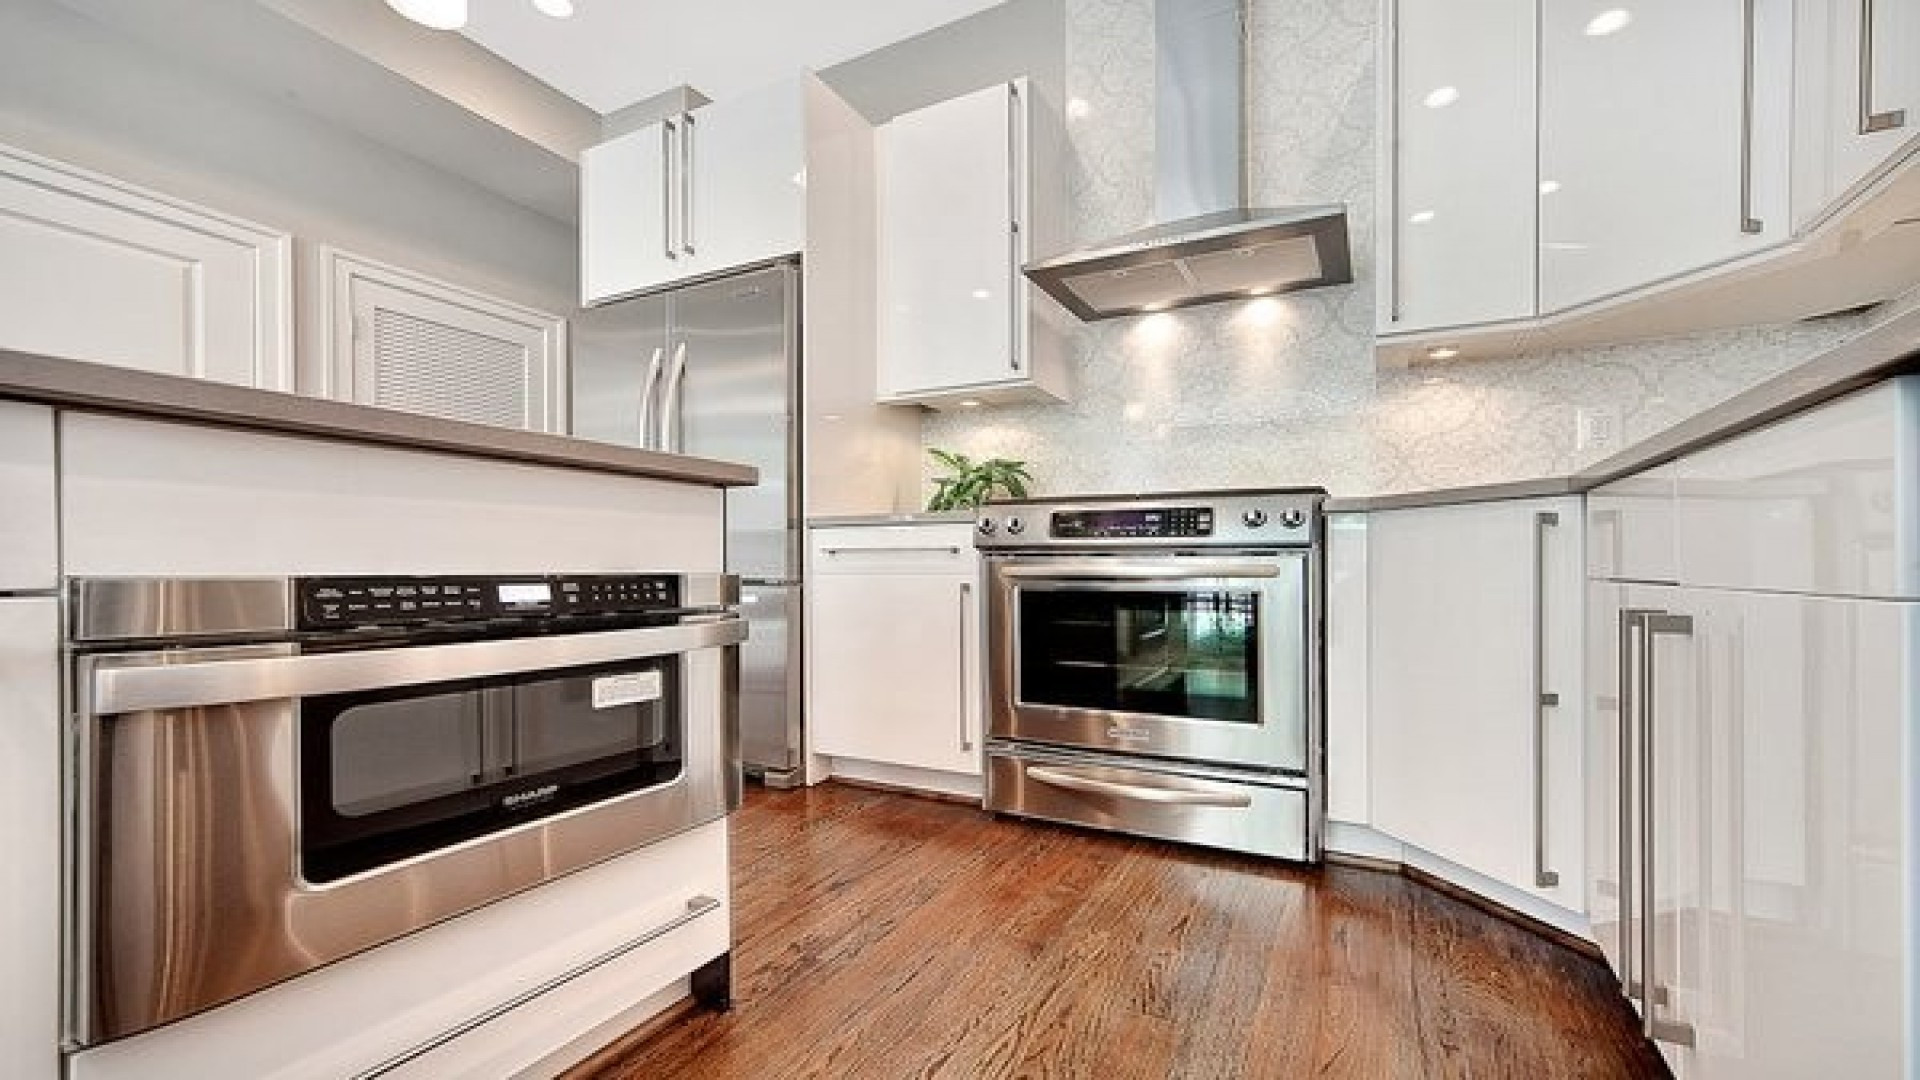 kitchens with hardwood floors and white cabinets of 35 luxury pictures of kitchens with white cabinets photograph pertaining to white kitchens best kitchen with white cabinets luxury kitchen cabinet 0d home